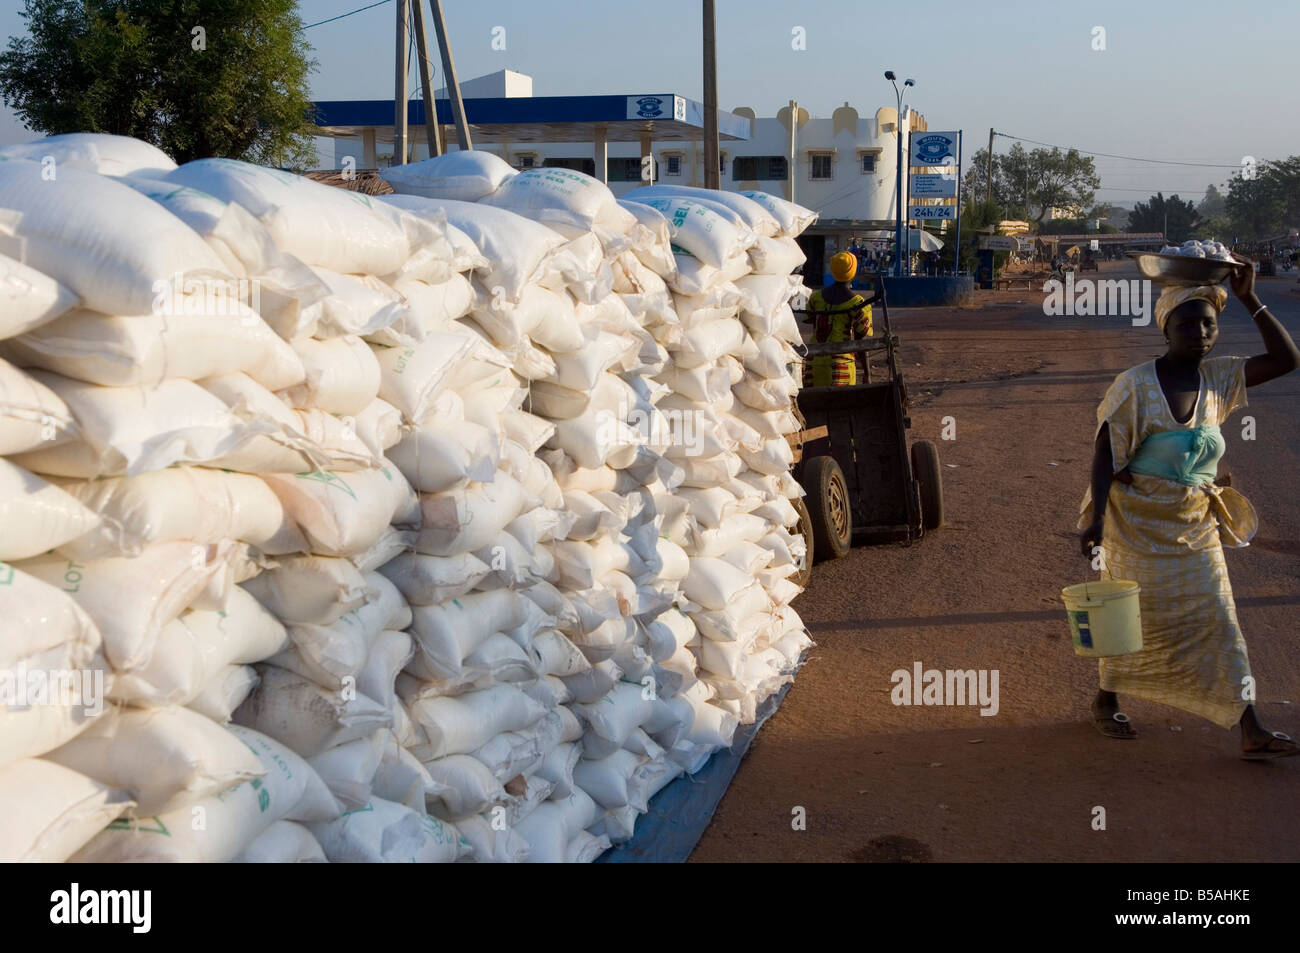 Salt sacks in the market, Sikasso, Mali, Africa Stock Photo